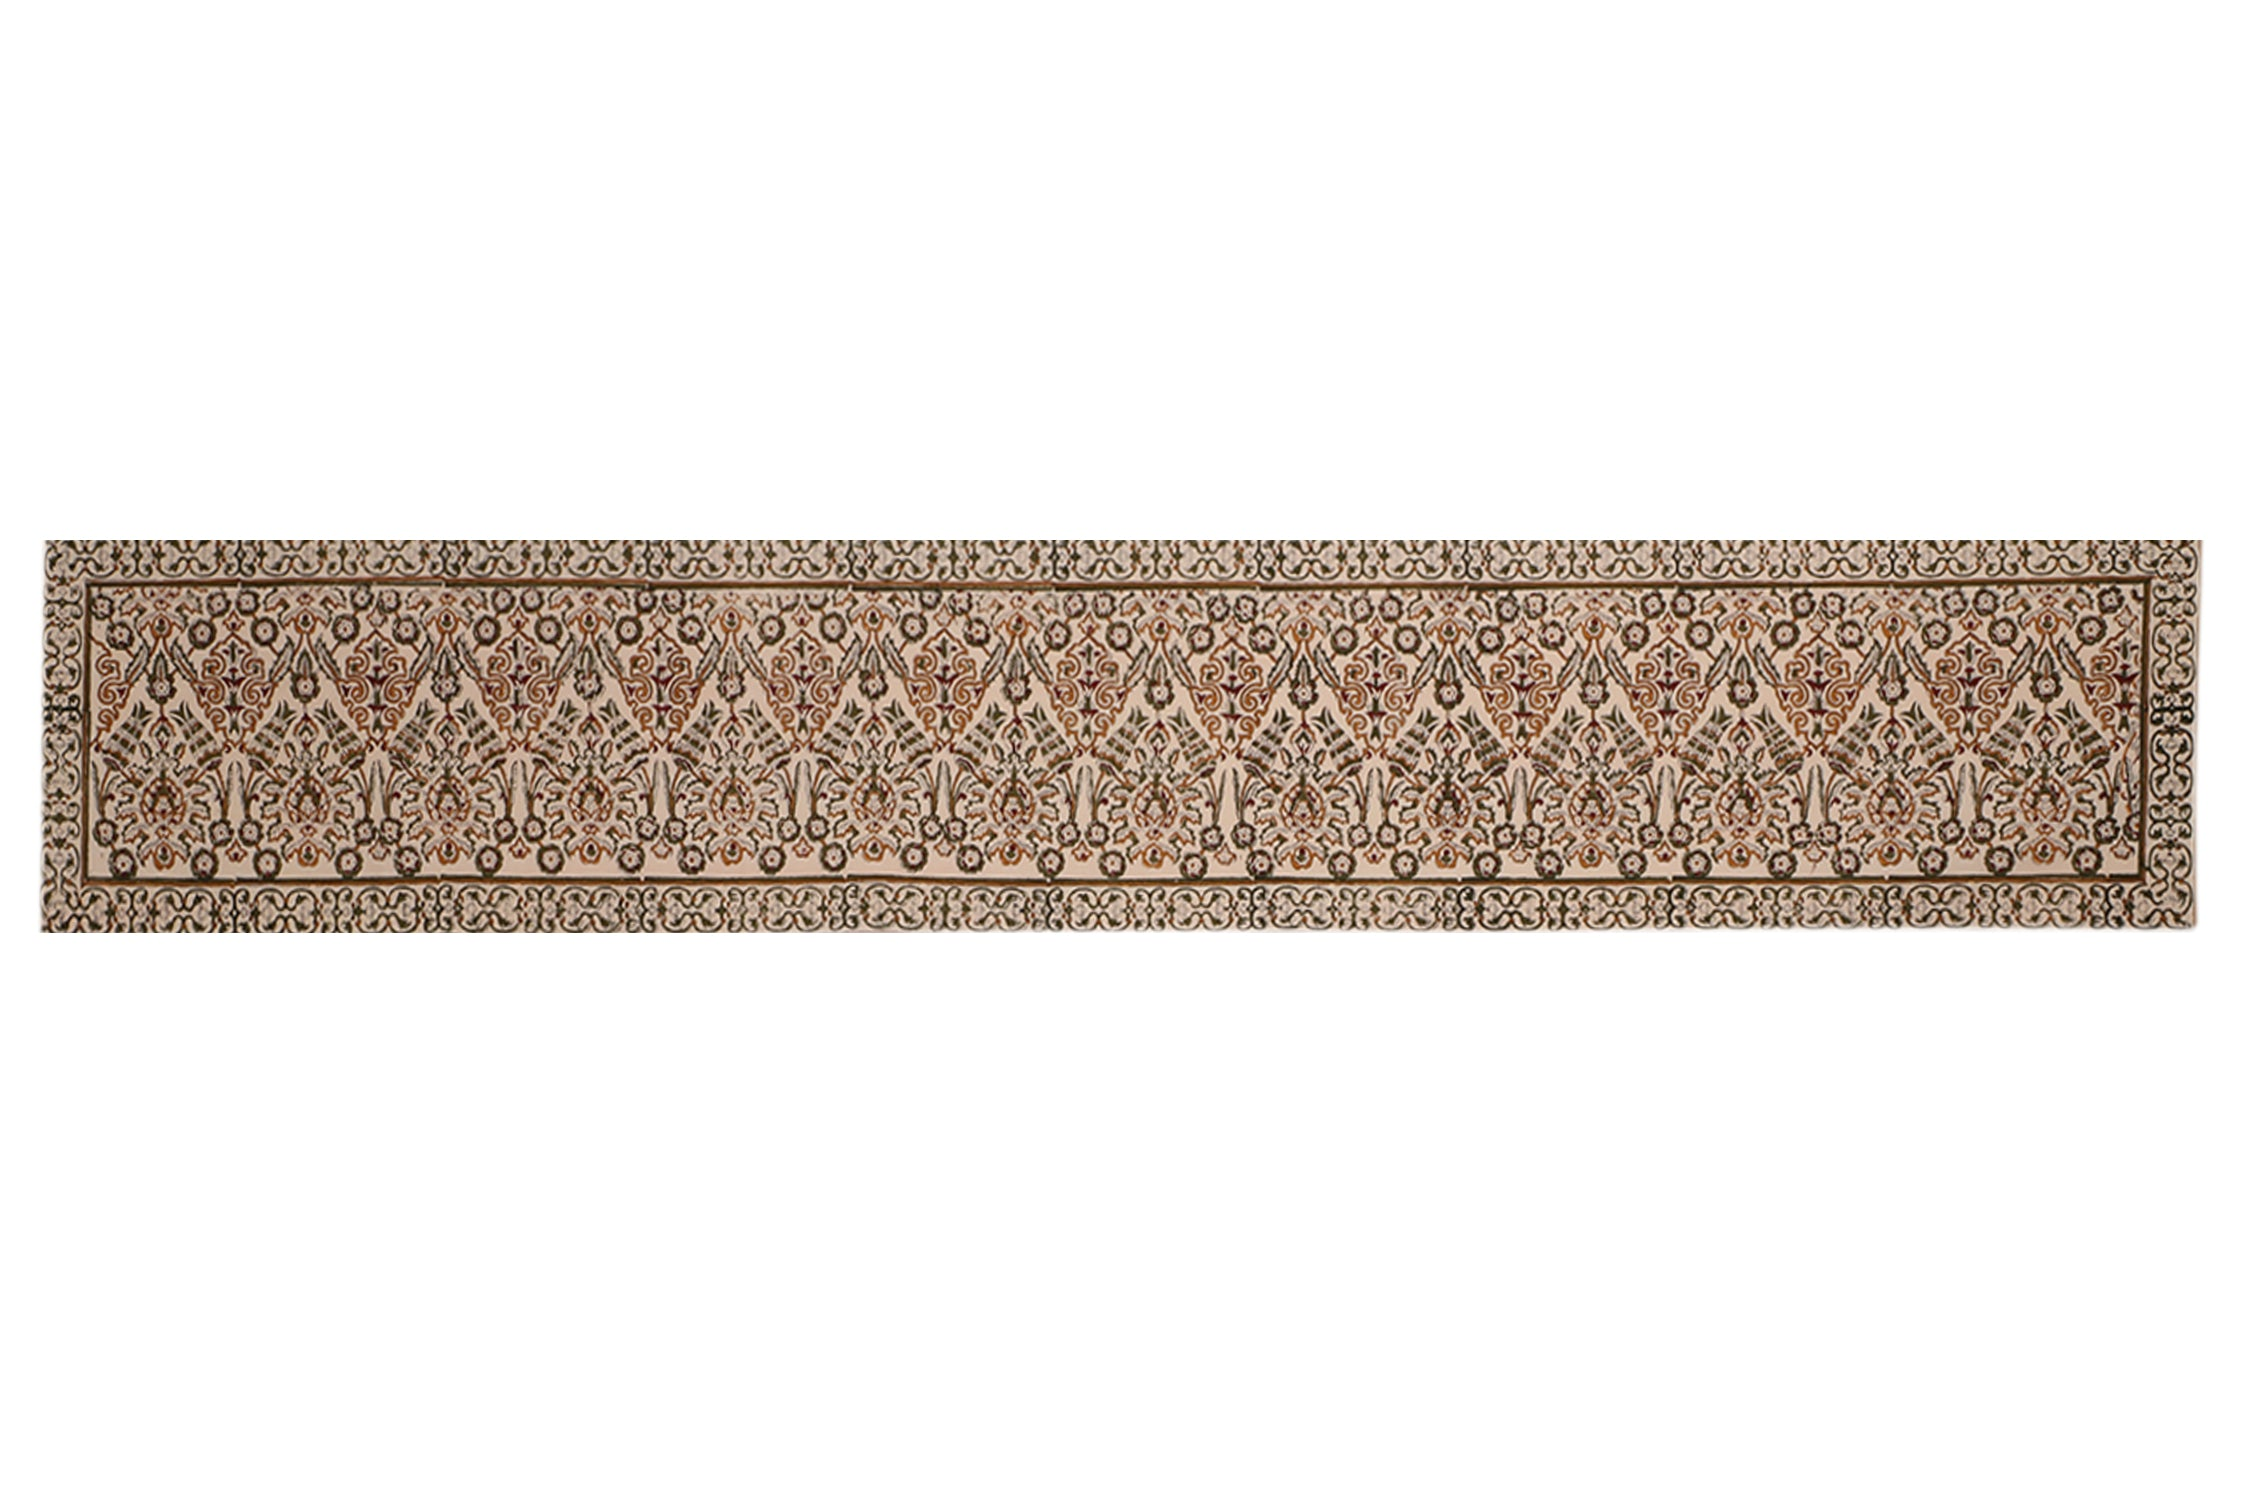 Cotton Floral & Paisley Table Runner - 13 x 72